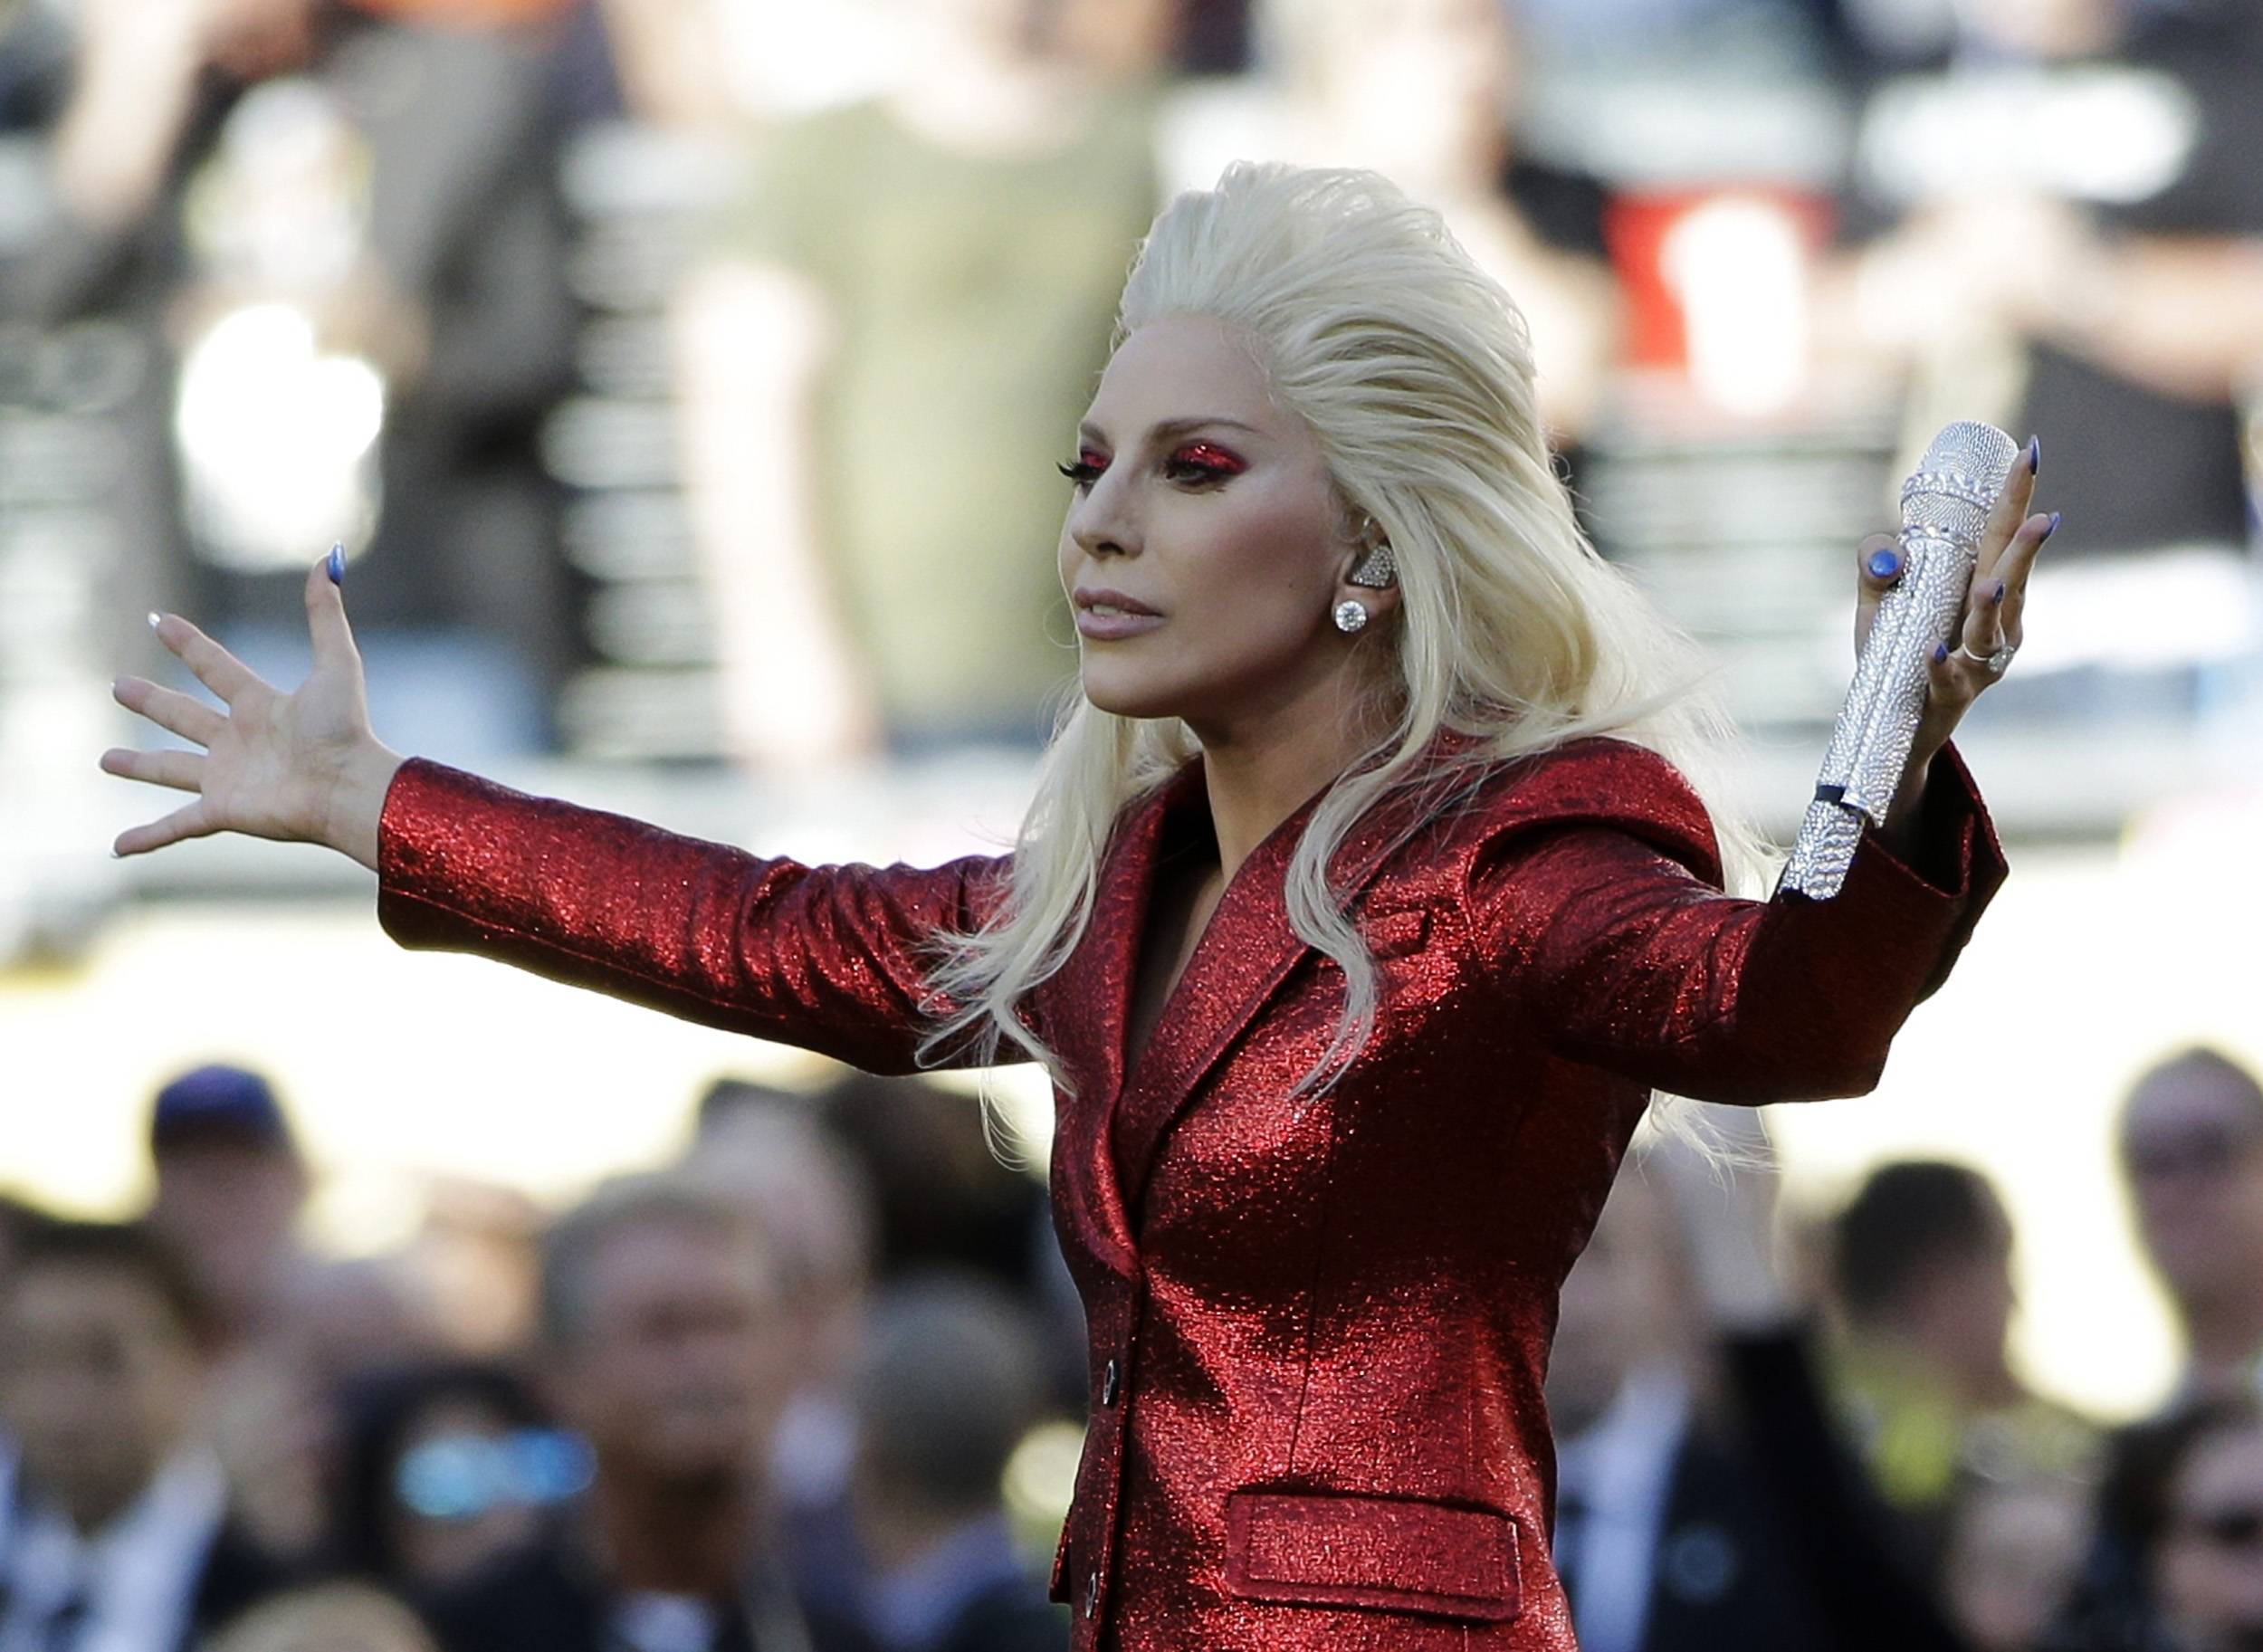 Lady Gaga sings the national anthem before the NFL Super Bowl 50 football game between the Denver Broncos and the Carolina Panthers Sunday in Santa Clara, Calif.